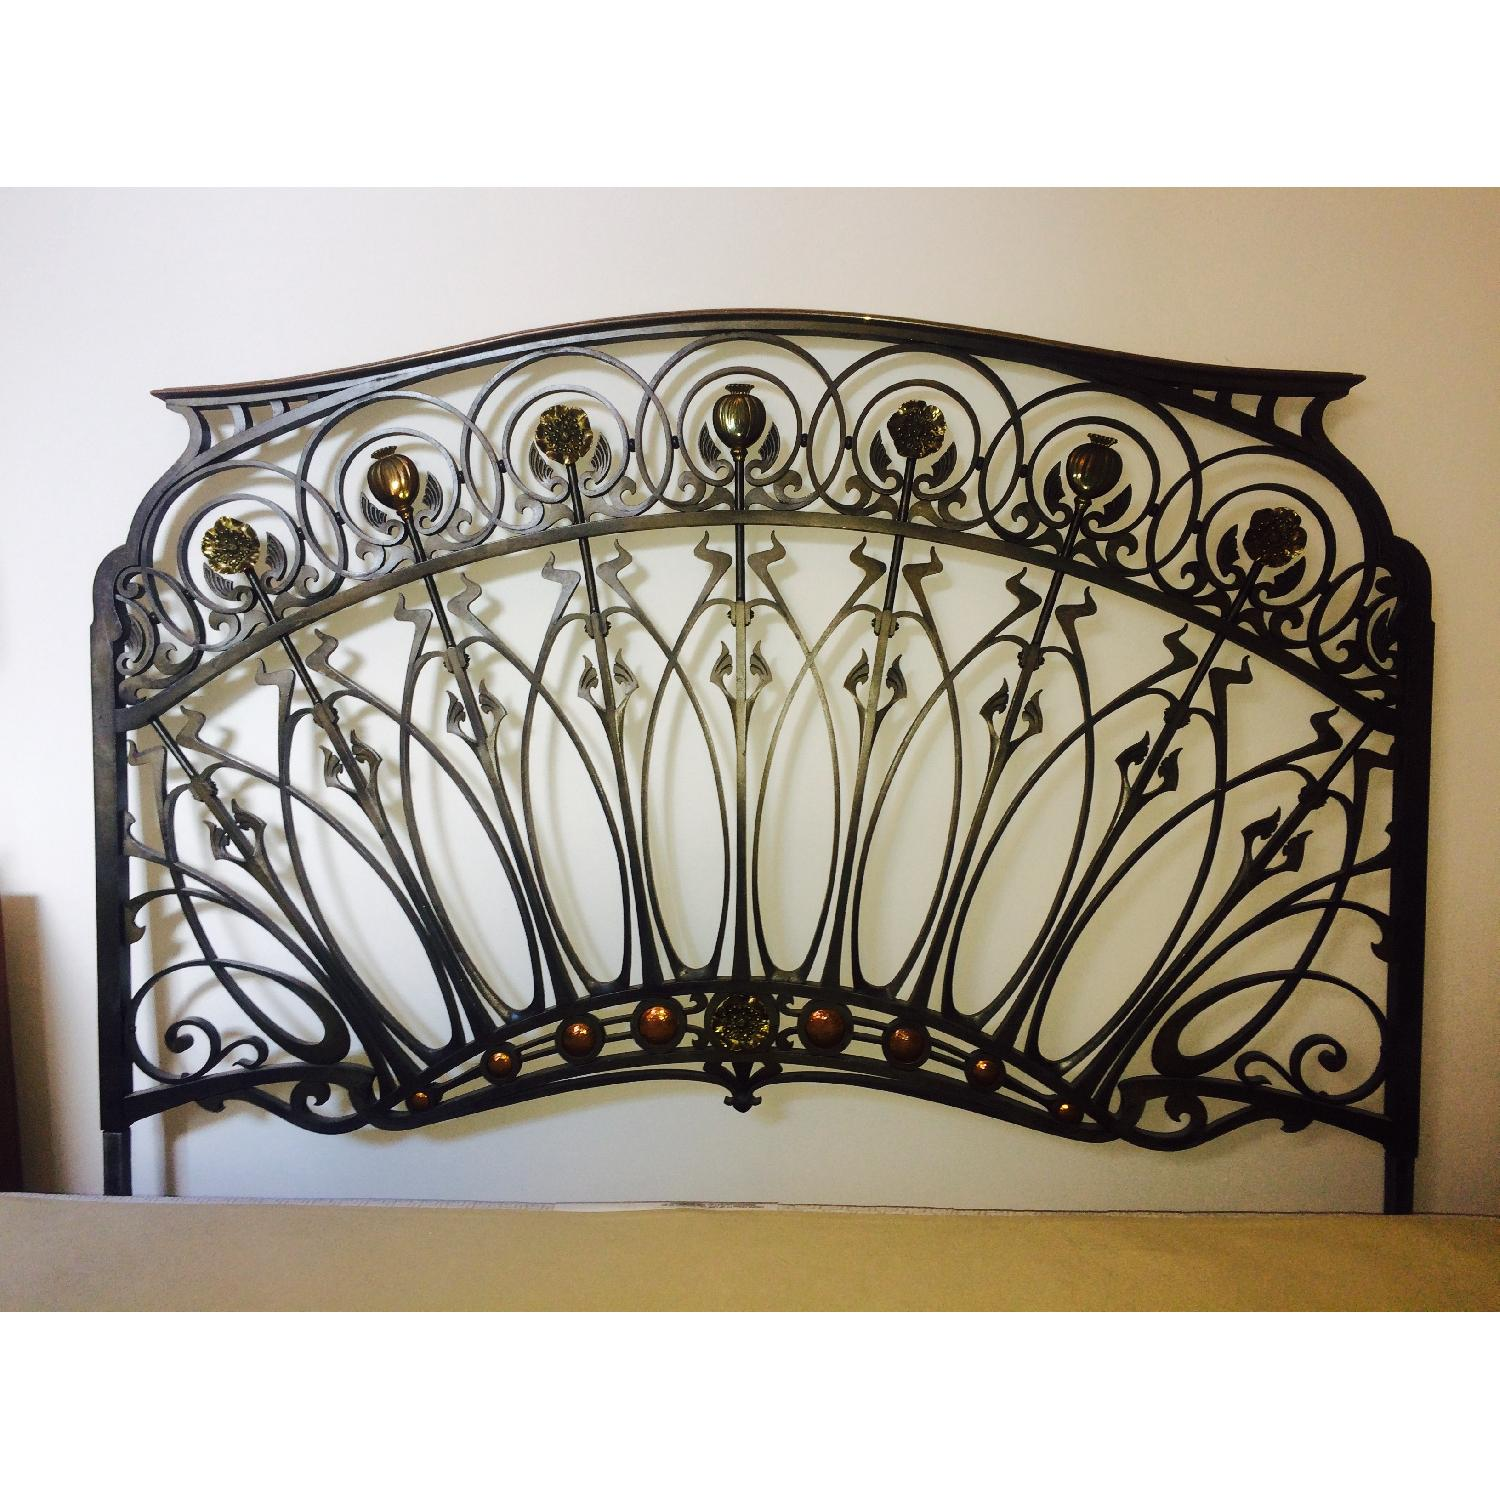 Early 20th-Century French Art Nouveau Wrought Iron and Gilt Bronze Headboard - image-8